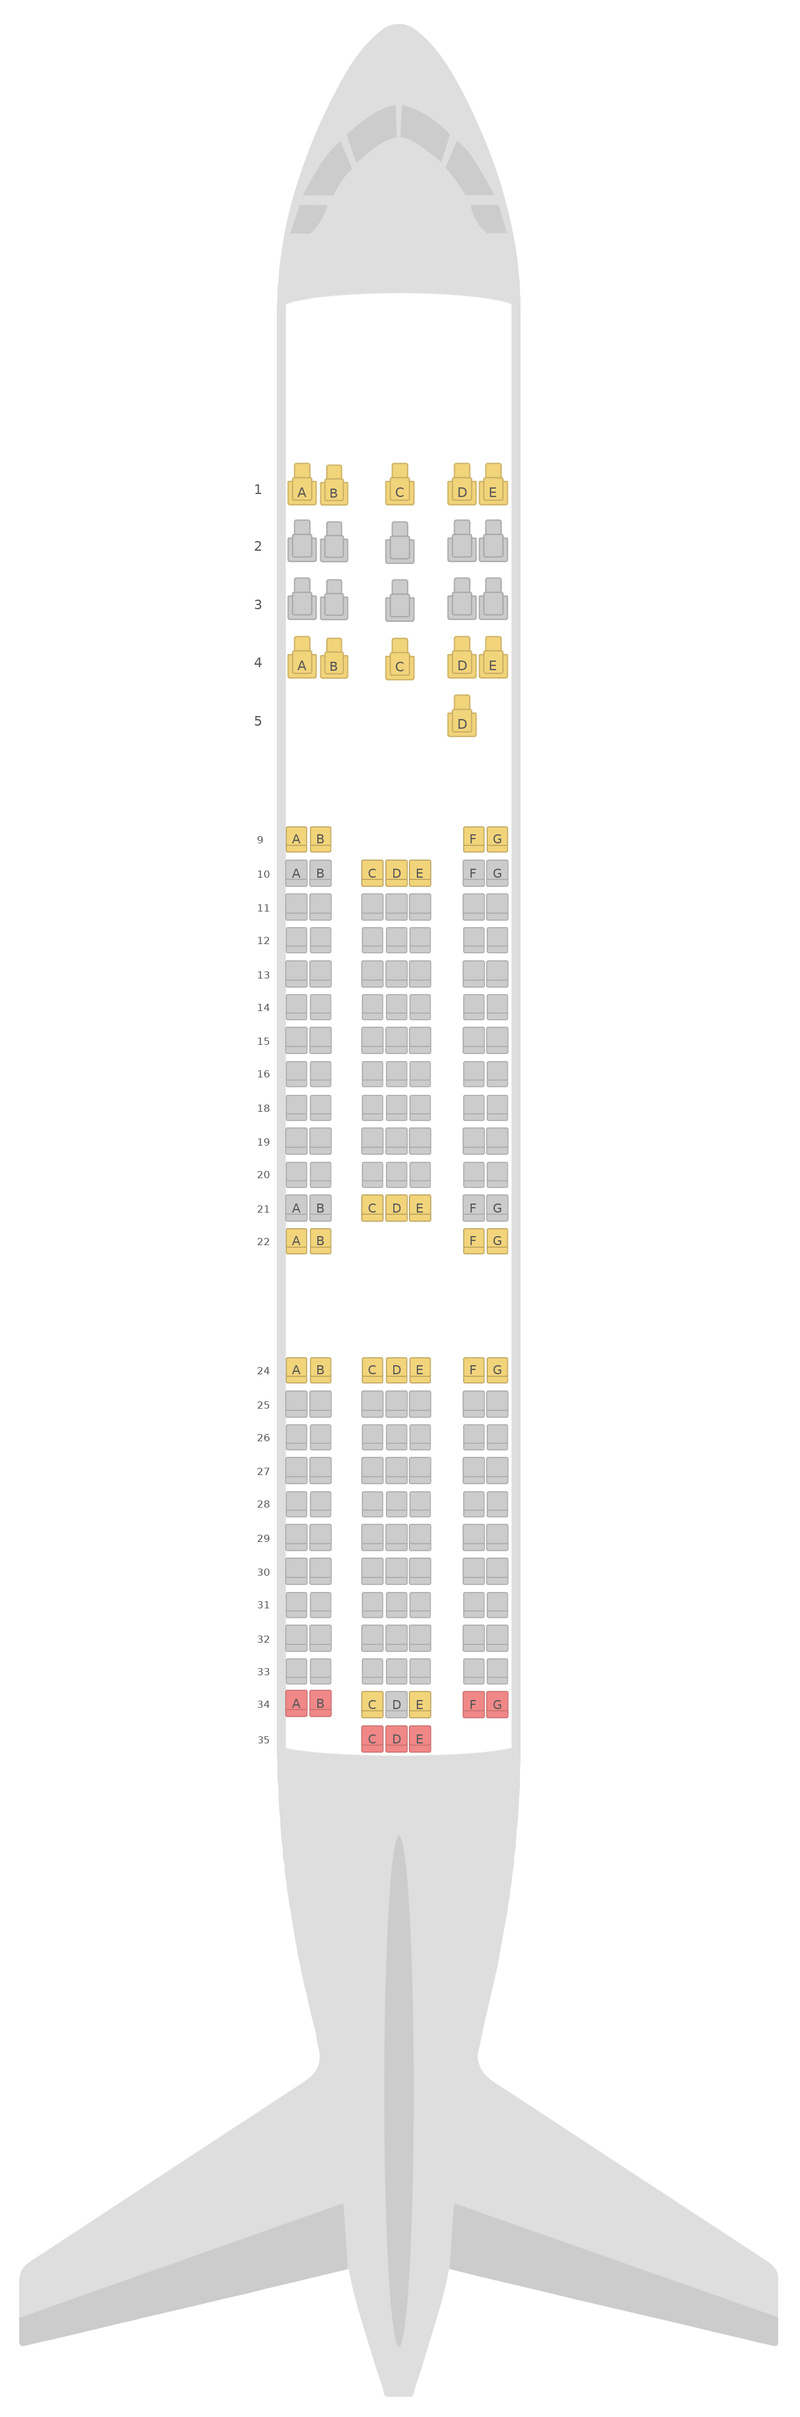 Seat Map Azerbaijan Airlines Boeing 767-300 (763)